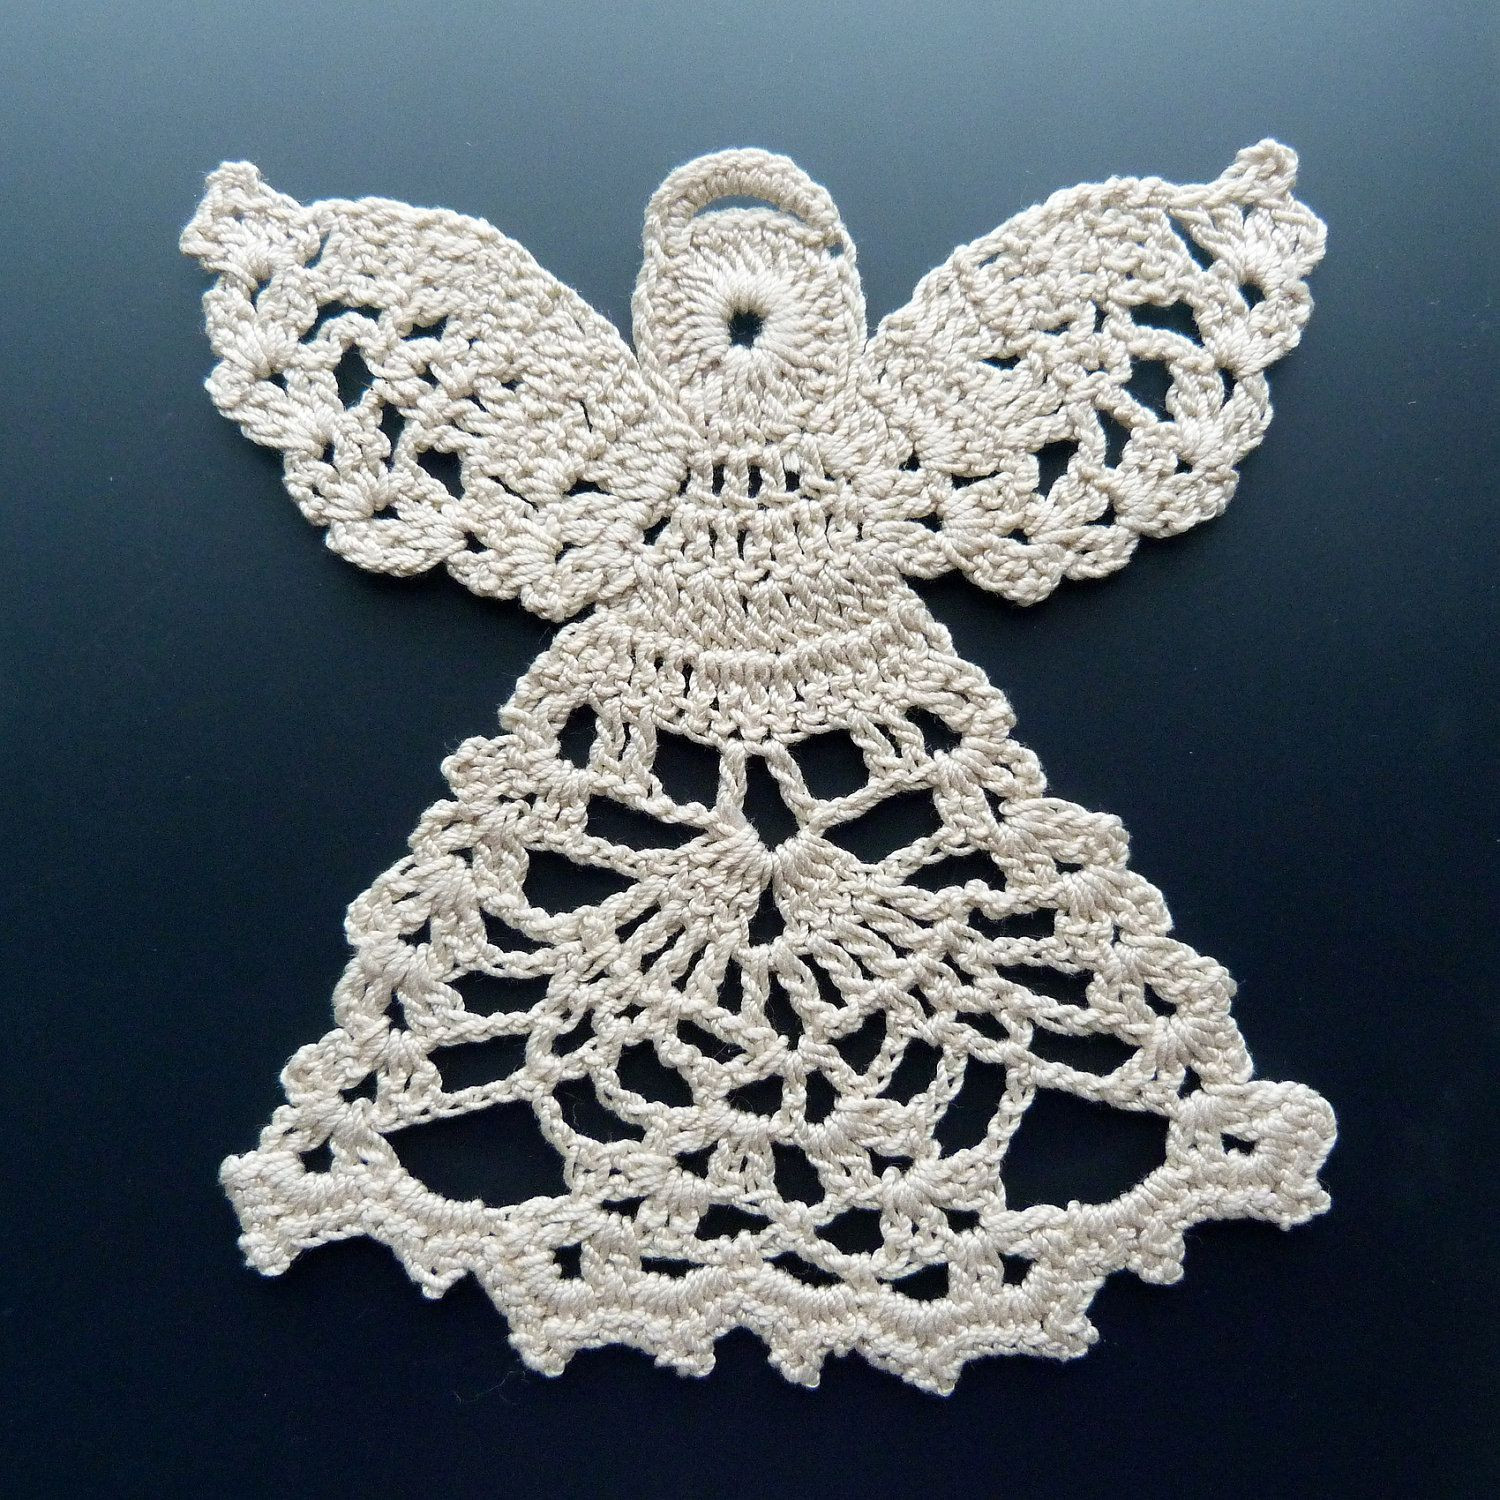 Crocheted Doily Angel in Lace angels